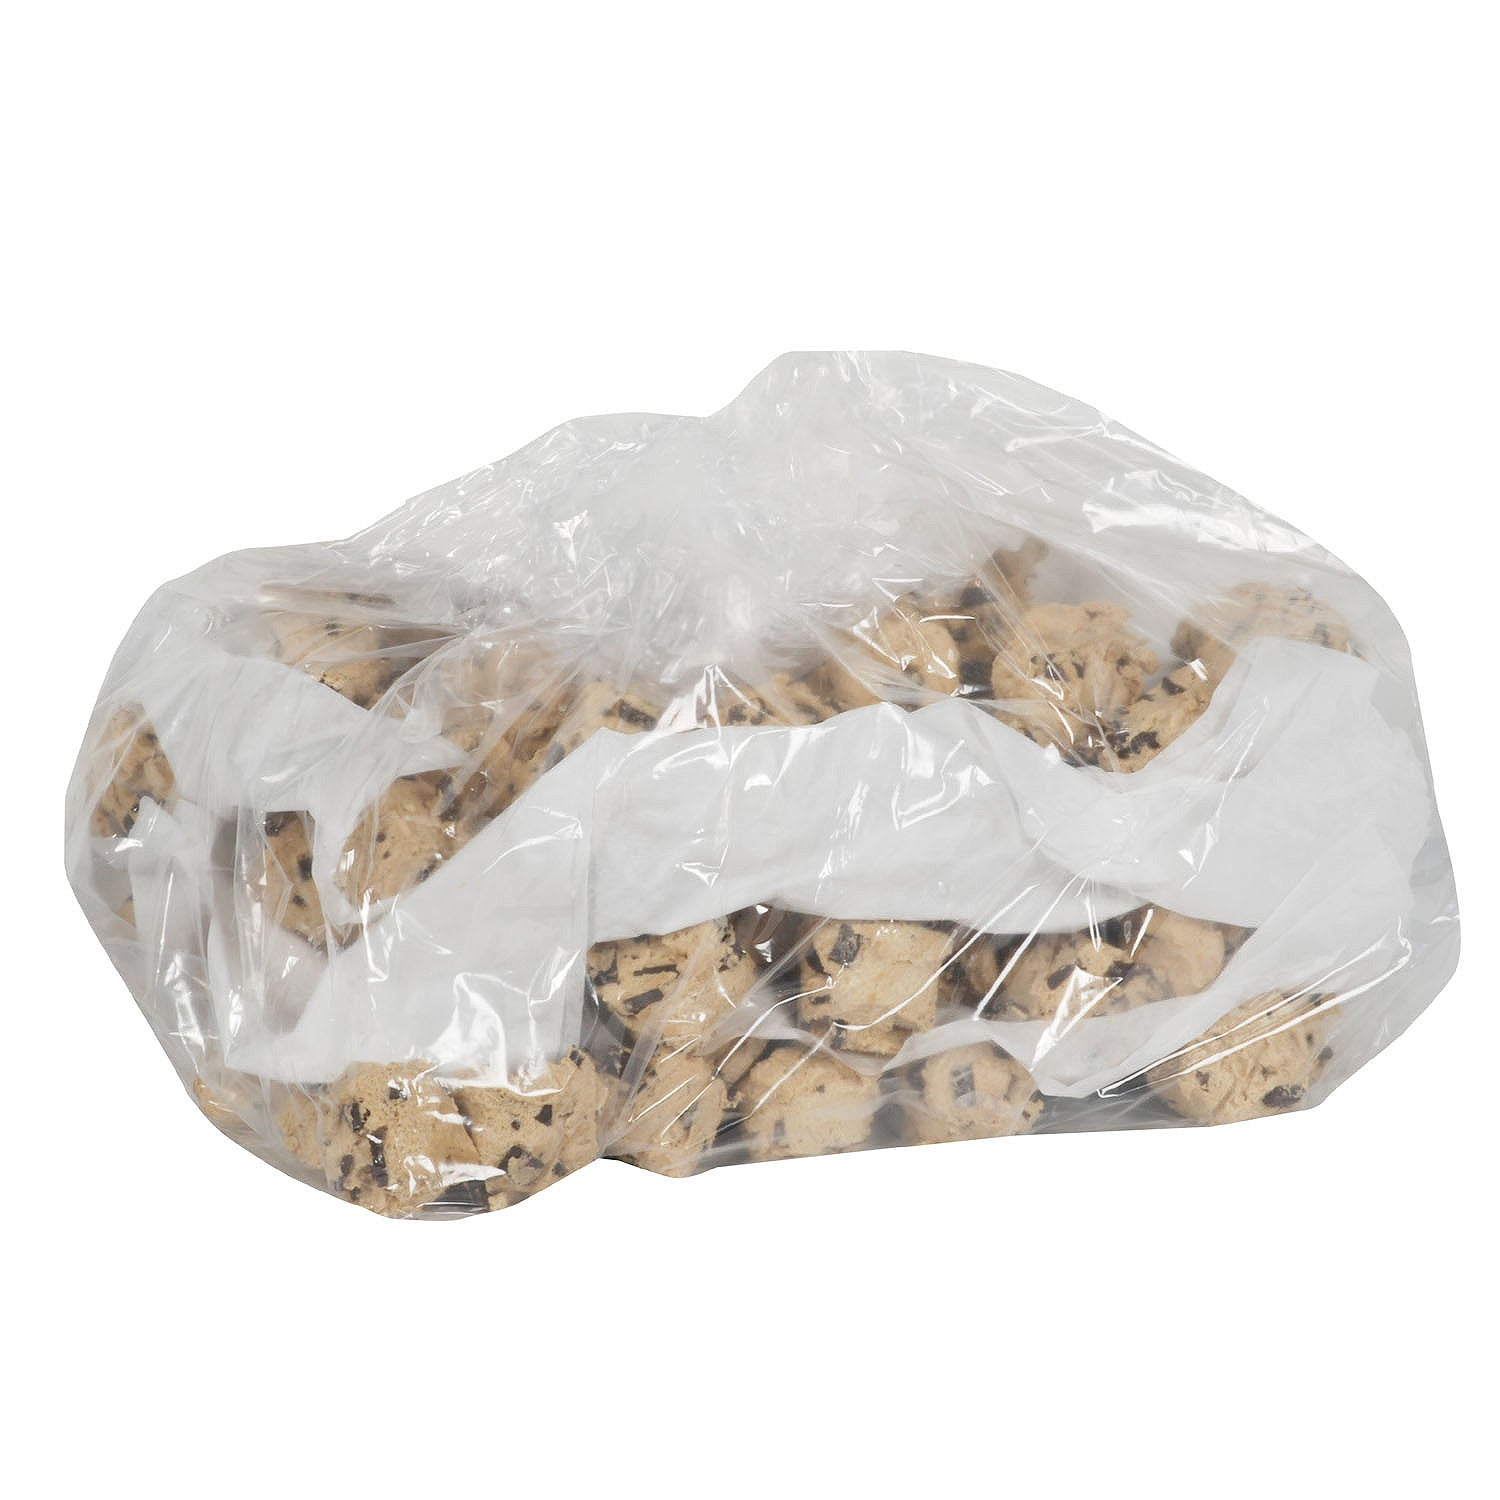 Sysco Block & Barrel Frozen Chocolate Chunk Cookie Dough 56 g - 128 Pack [$0.34/each]